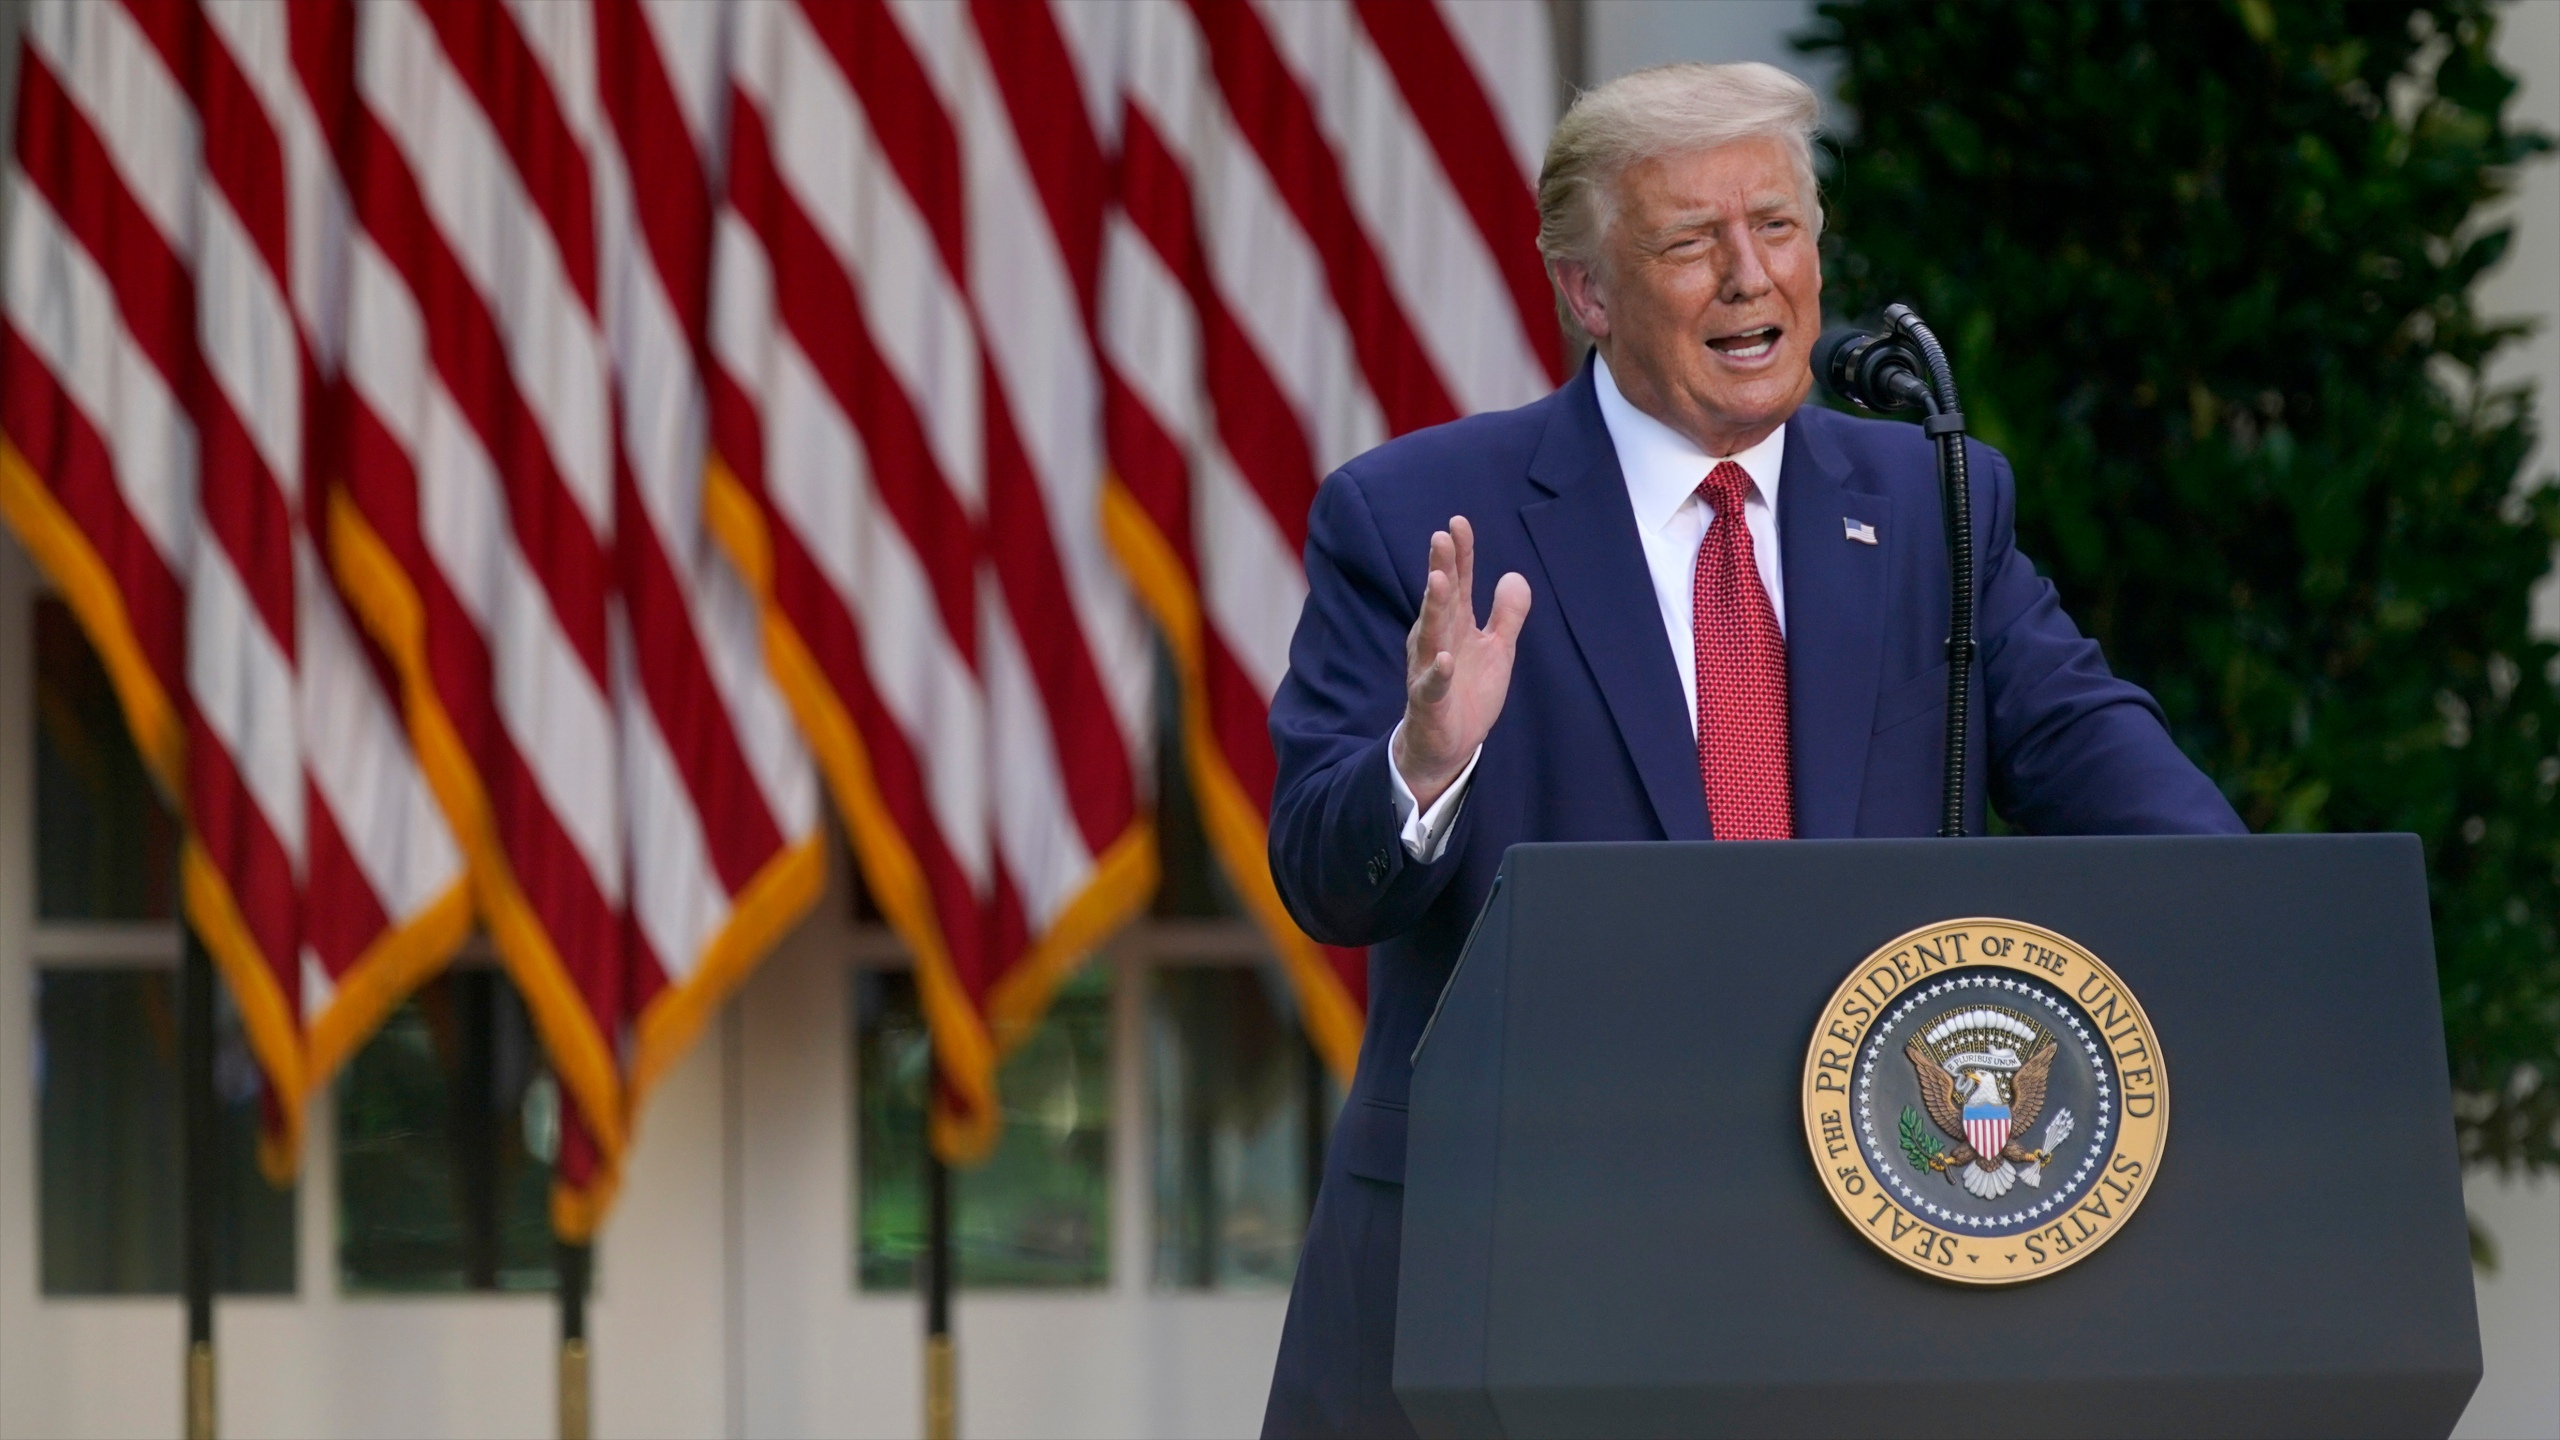 President Donald Trump speaks during a news conference in the Rose Garden of the White House on July 14, 2020, in Washington. (AP Photo/Evan Vucci)